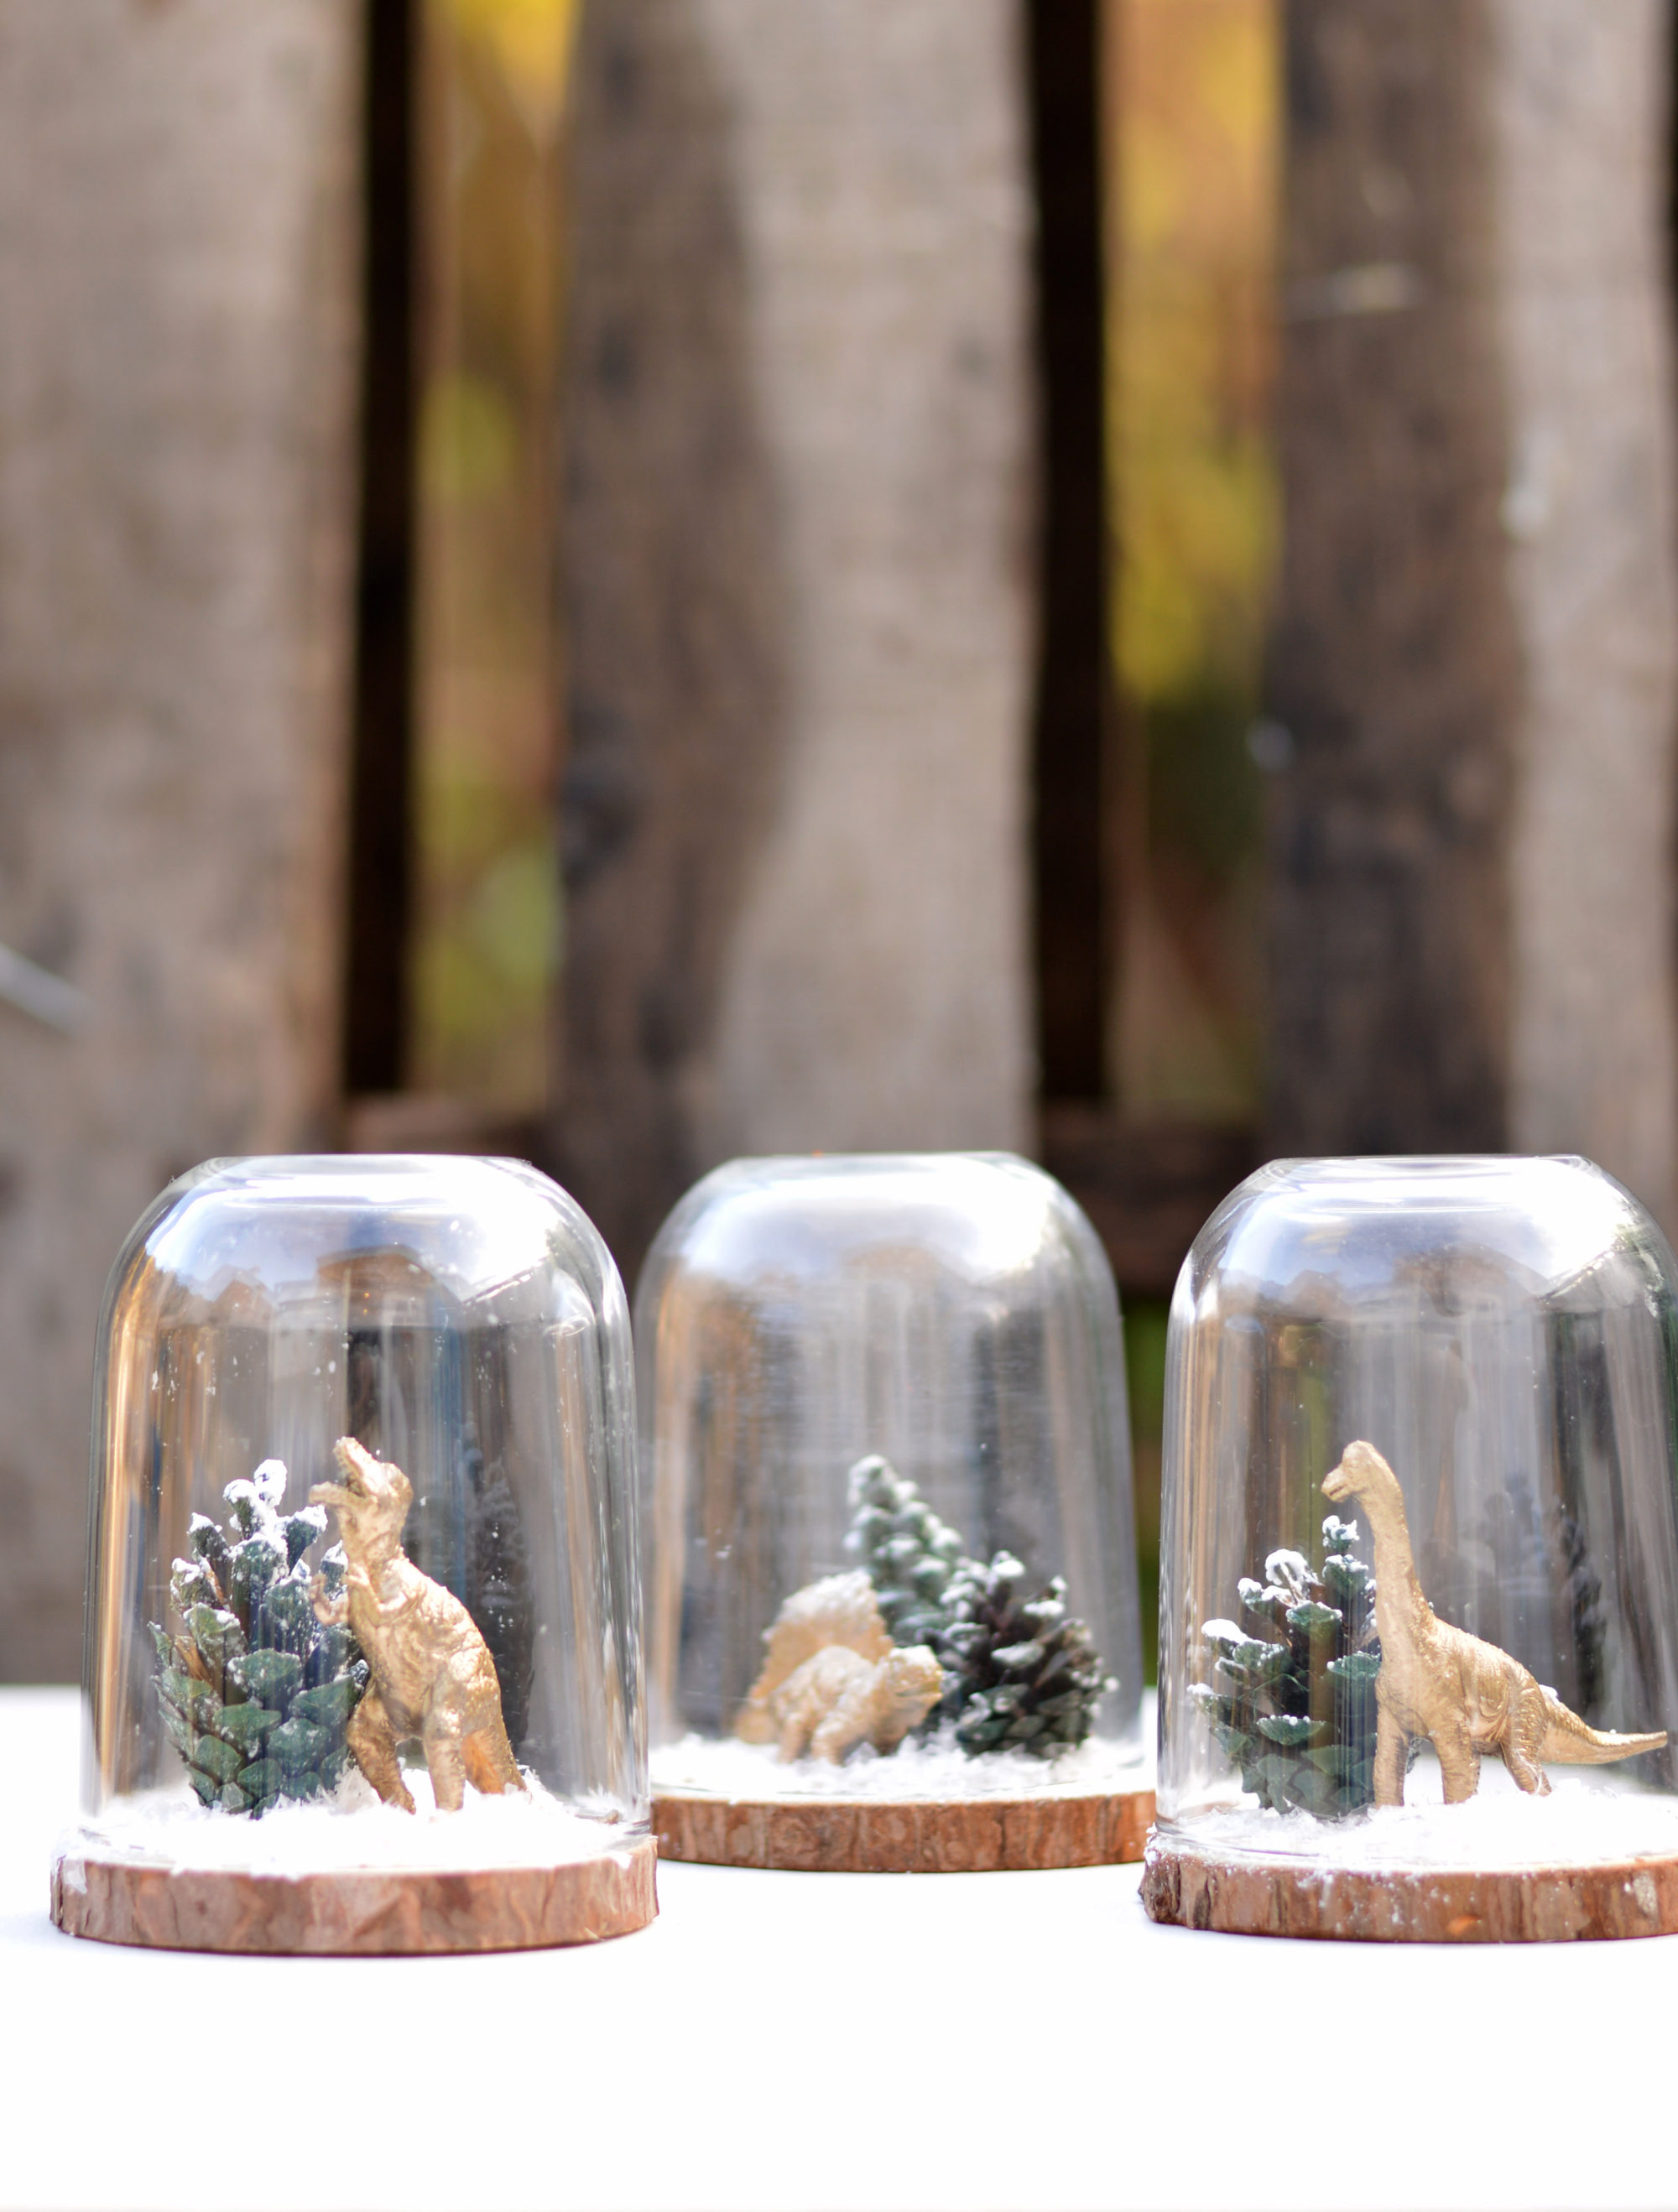 Add some fun to your Christmas decorations by repurposing a Nutella jar and making a super cute min Christmas Cloche (dinosaur terrarium).